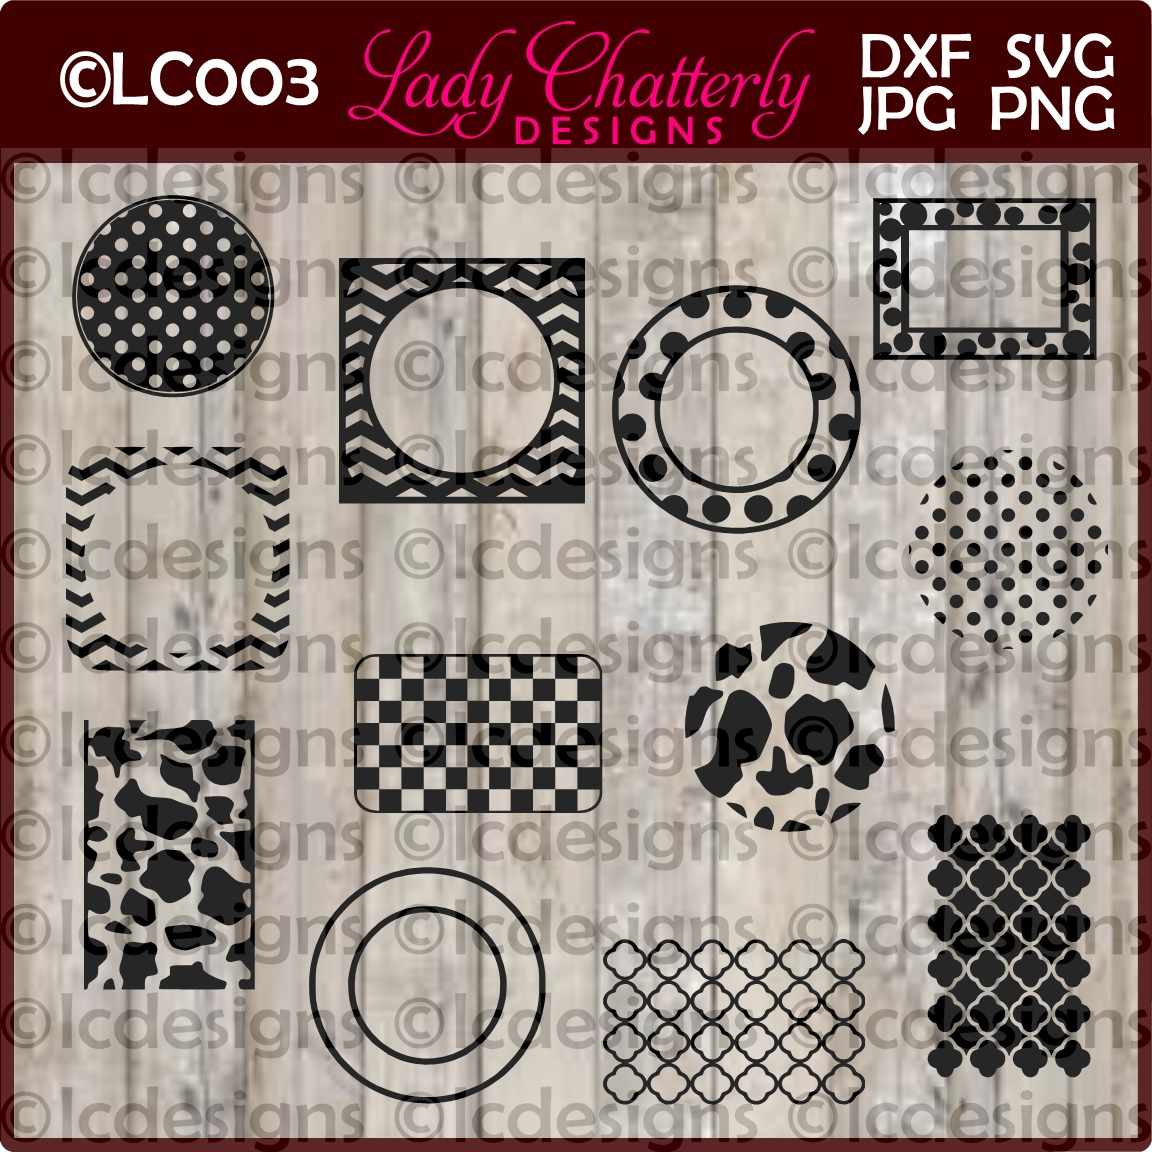 LC003 - Monogram Frames and Patterns II example image 1